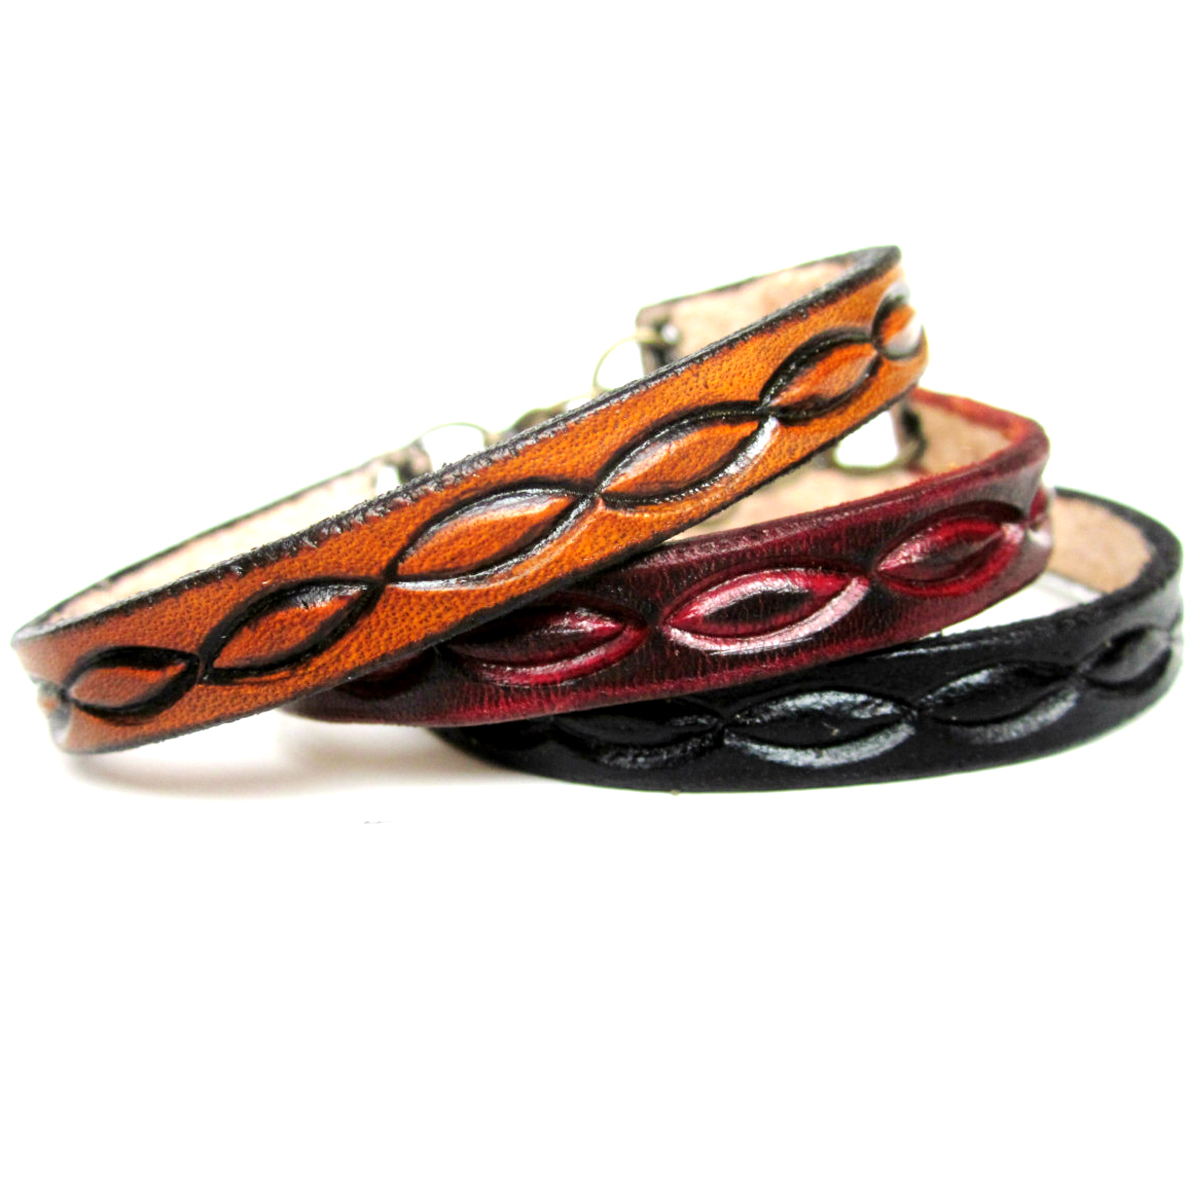 weave-thin-leather-bracelet-the-leather-smithy_1